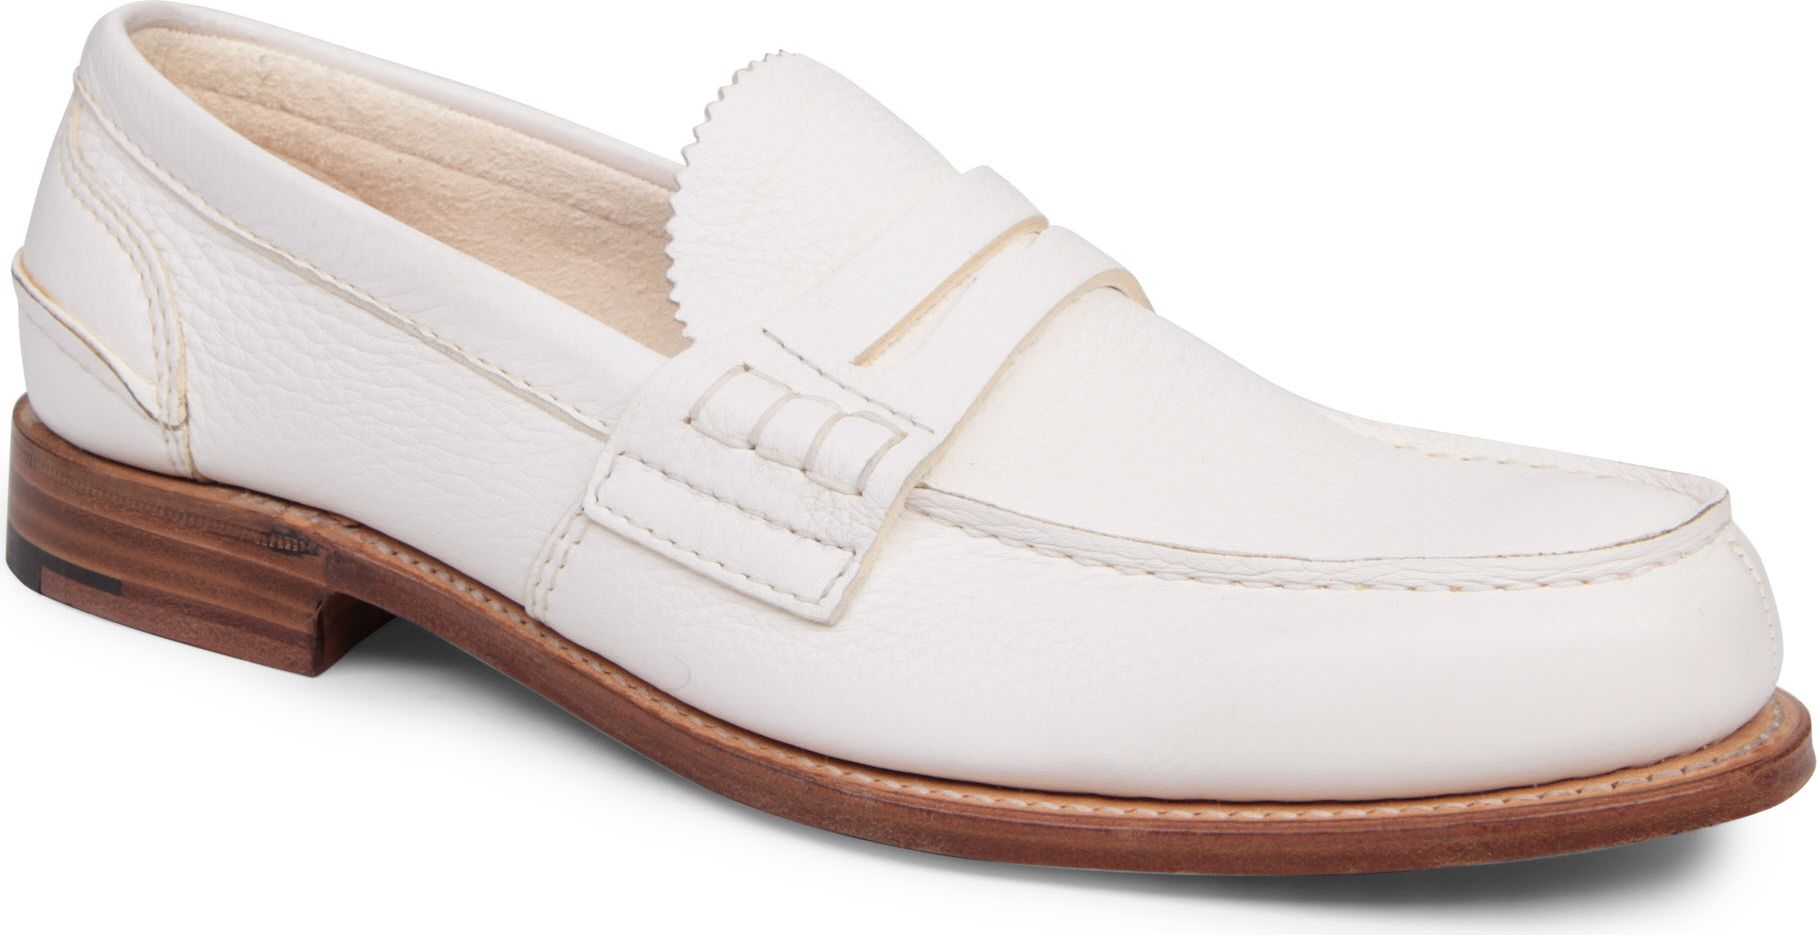 Church's Pembrey Penny Loafers in White for Men - Lyst